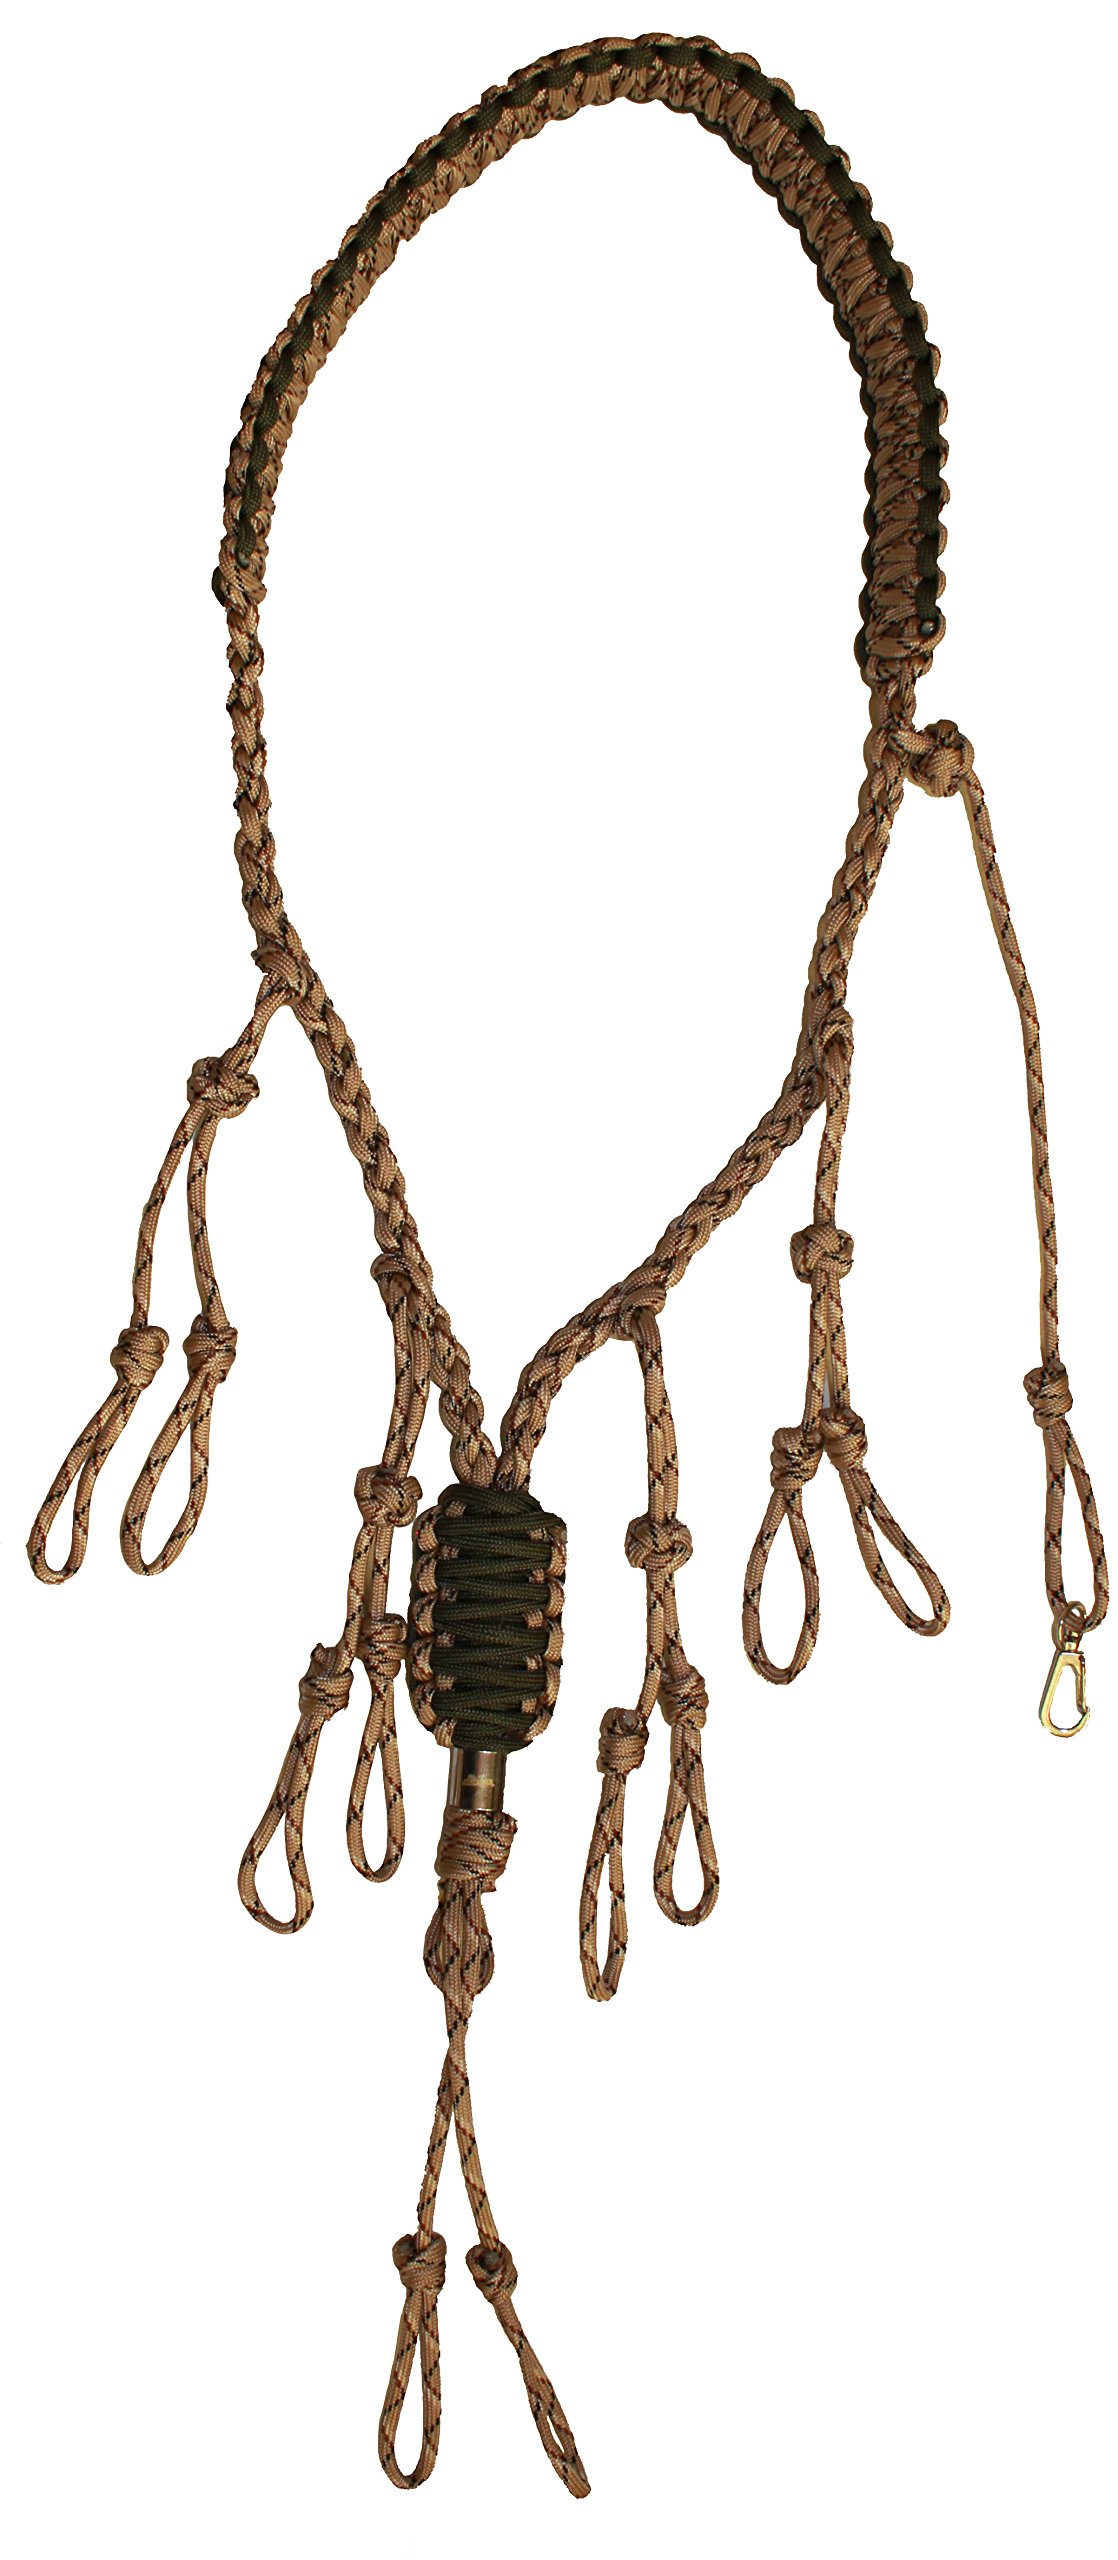 Duck Call Lanyard – Secures 5 Calls – Premium Hand Braided Camo 550 Paracord – Best for Goose, Predator, Varmint, Deer or Duck Calls – Adjustable Loops - Outdoor Hunting Gear – Protect your investments - Lifetime No-Hassle Free Replacement Guara